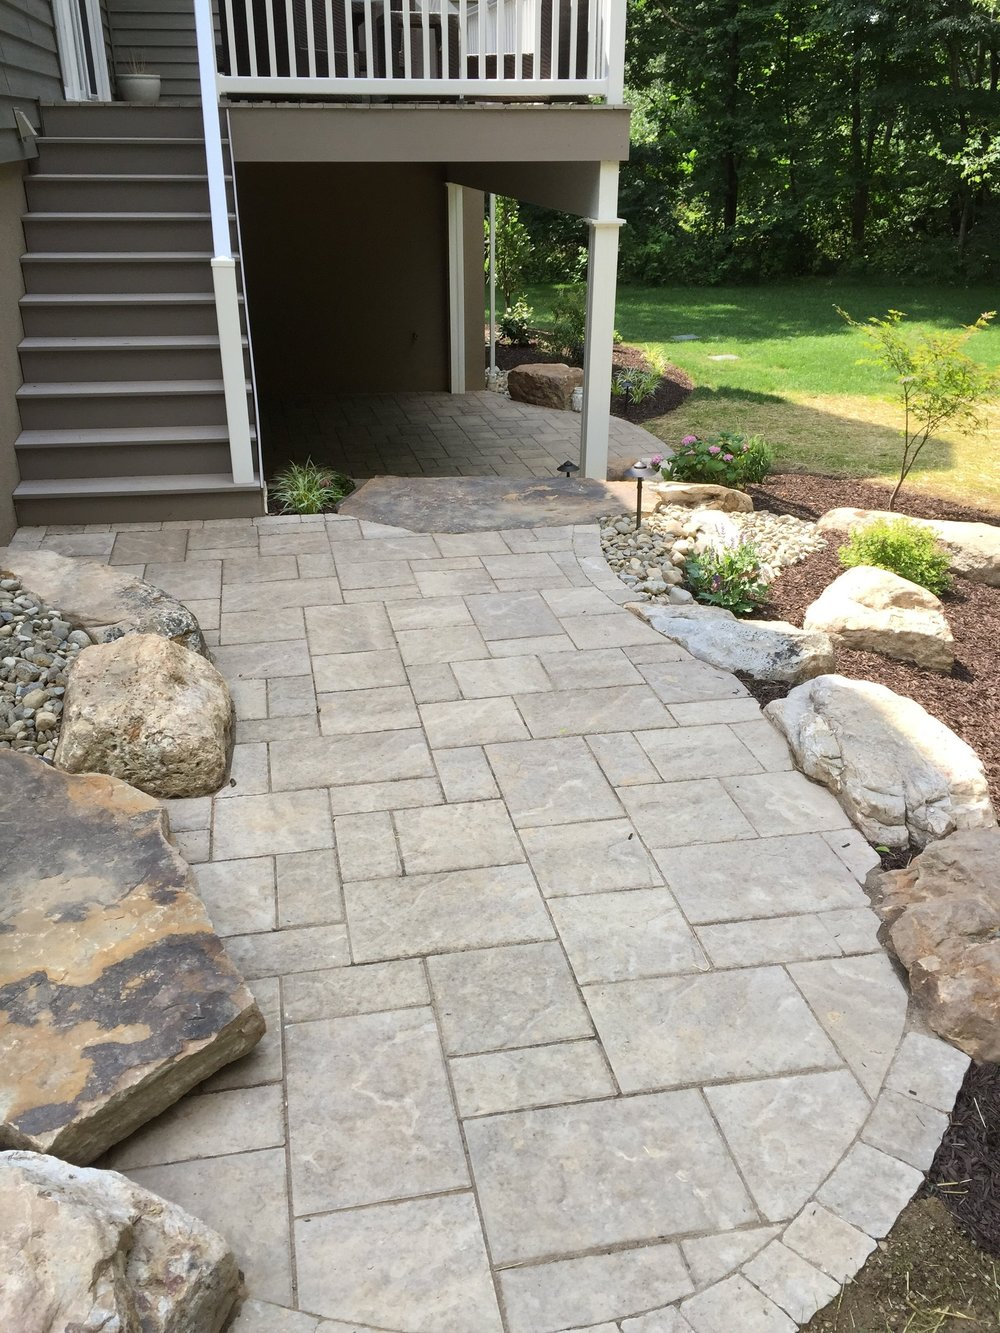 Landscape contractor with professional landscaping pavers in Lebanon, PA